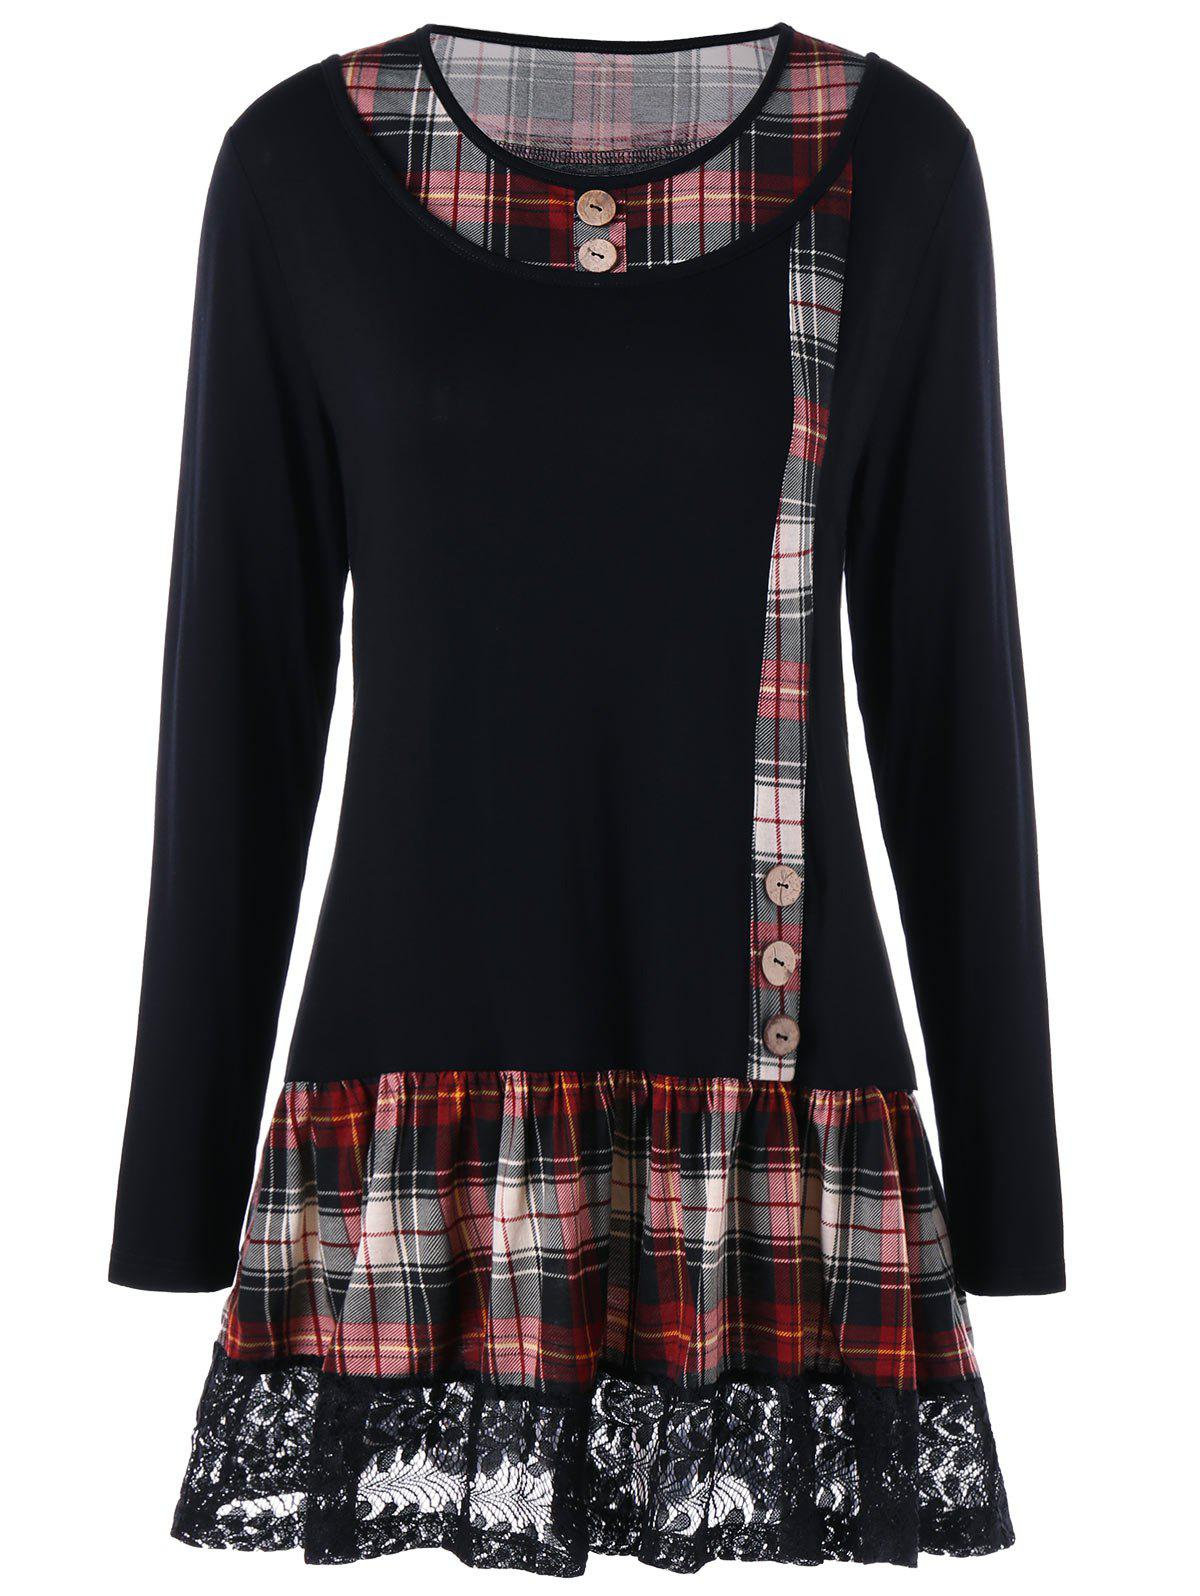 Plus Size Plaid Buttons Lace Panel Long Sleeve T-shirtWOMEN<br><br>Size: 2XL; Color: BLACK; Material: Cotton,Polyester; Shirt Length: Long; Sleeve Length: Full; Collar: Scoop Neck; Style: Fashion; Season: Fall,Spring; Embellishment: Button,Lace,Panel; Pattern Type: Plaid; Weight: 0.3300kg; Package Contents: 1 x T-shirt;